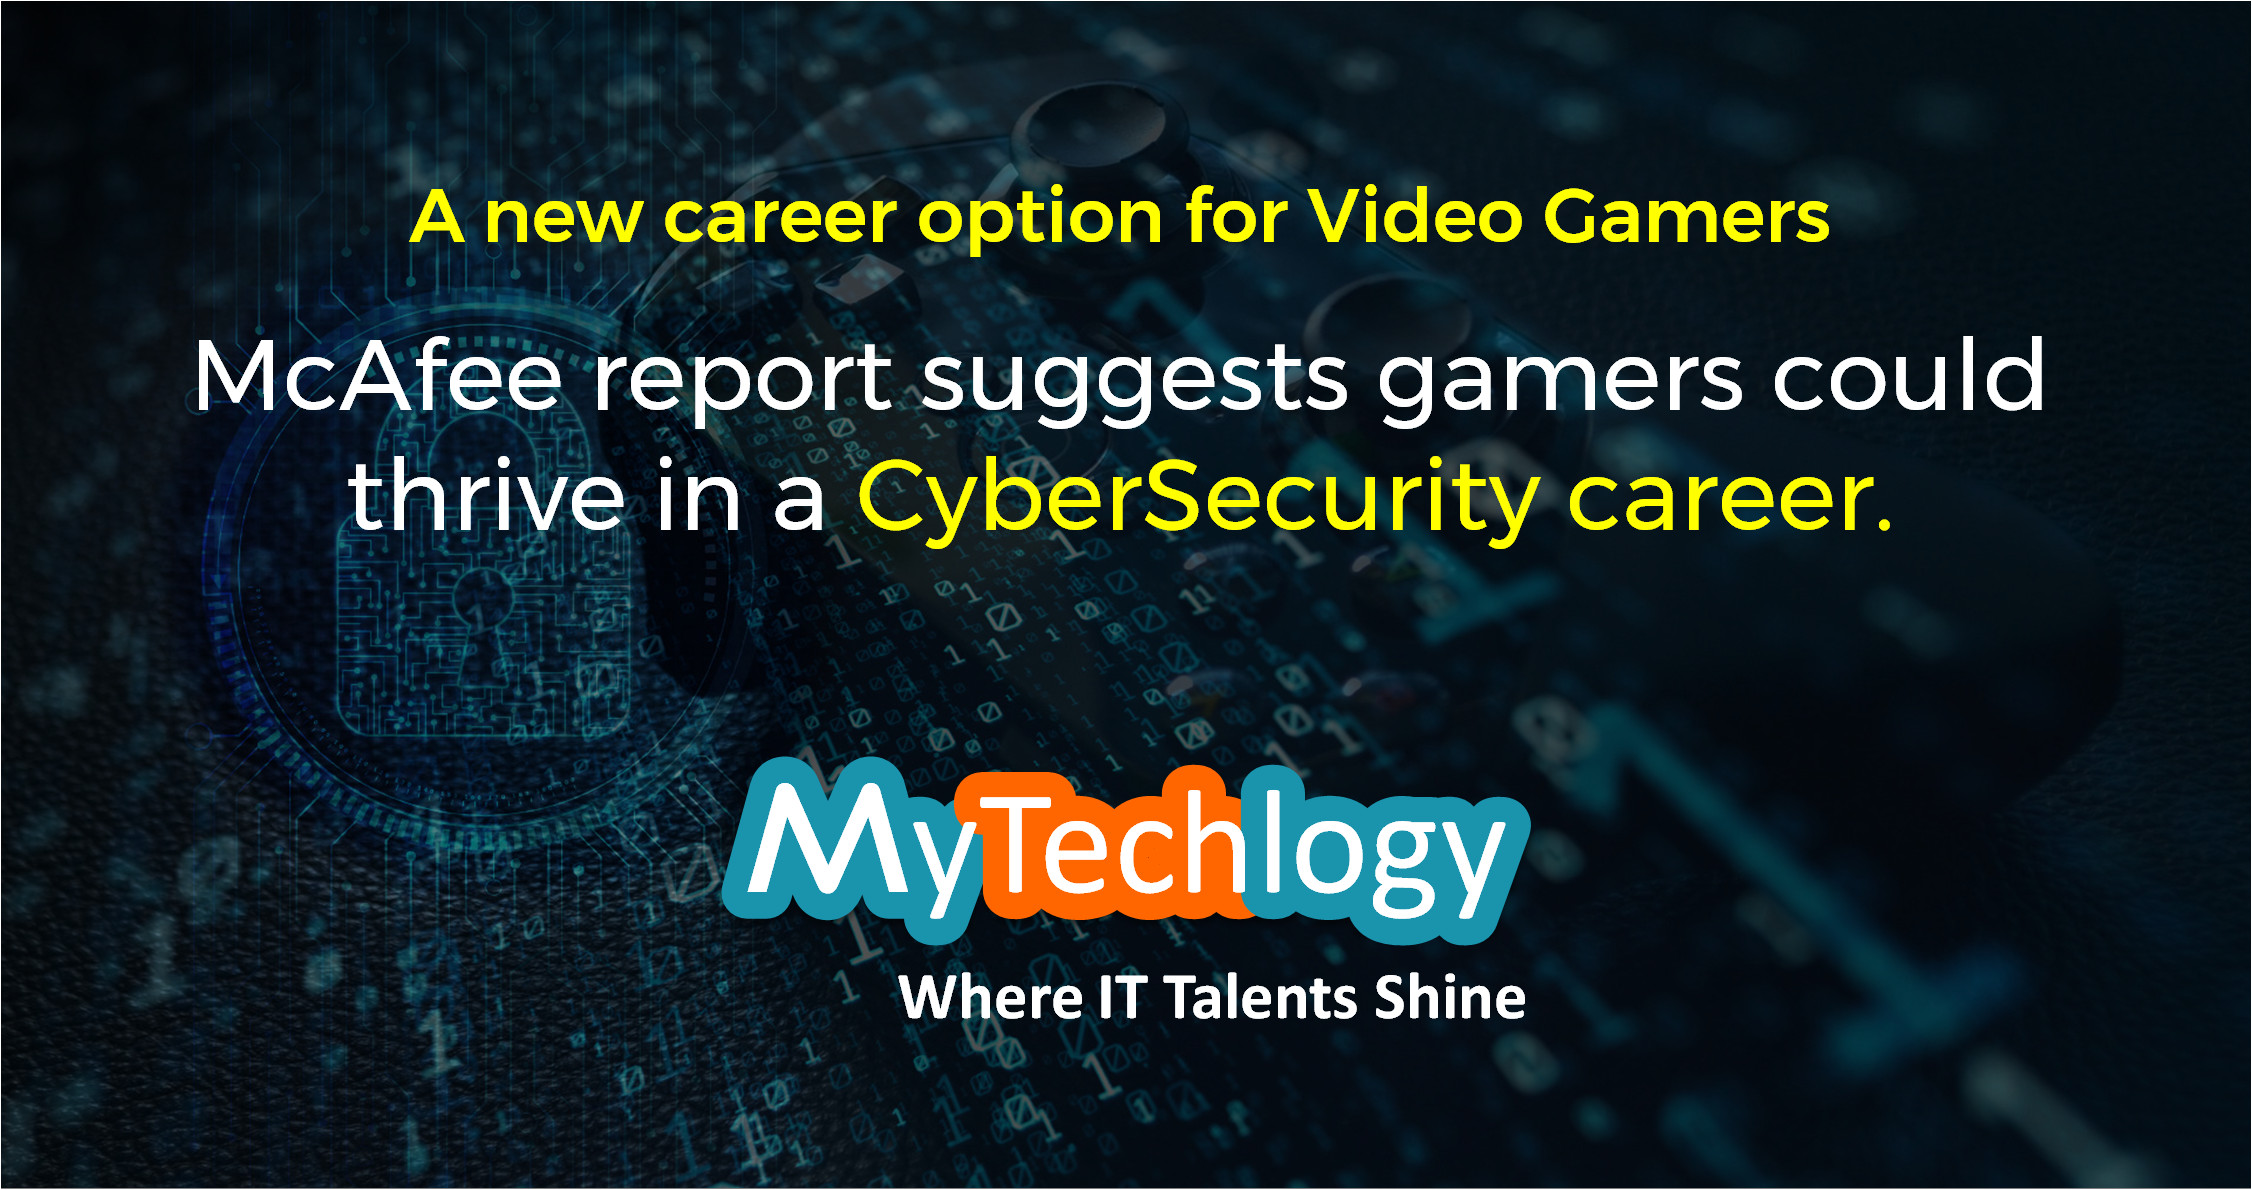 A new career option for Video Gamers, McAfee report suggests gamers could thrive in a cybersecurity career - Image 1